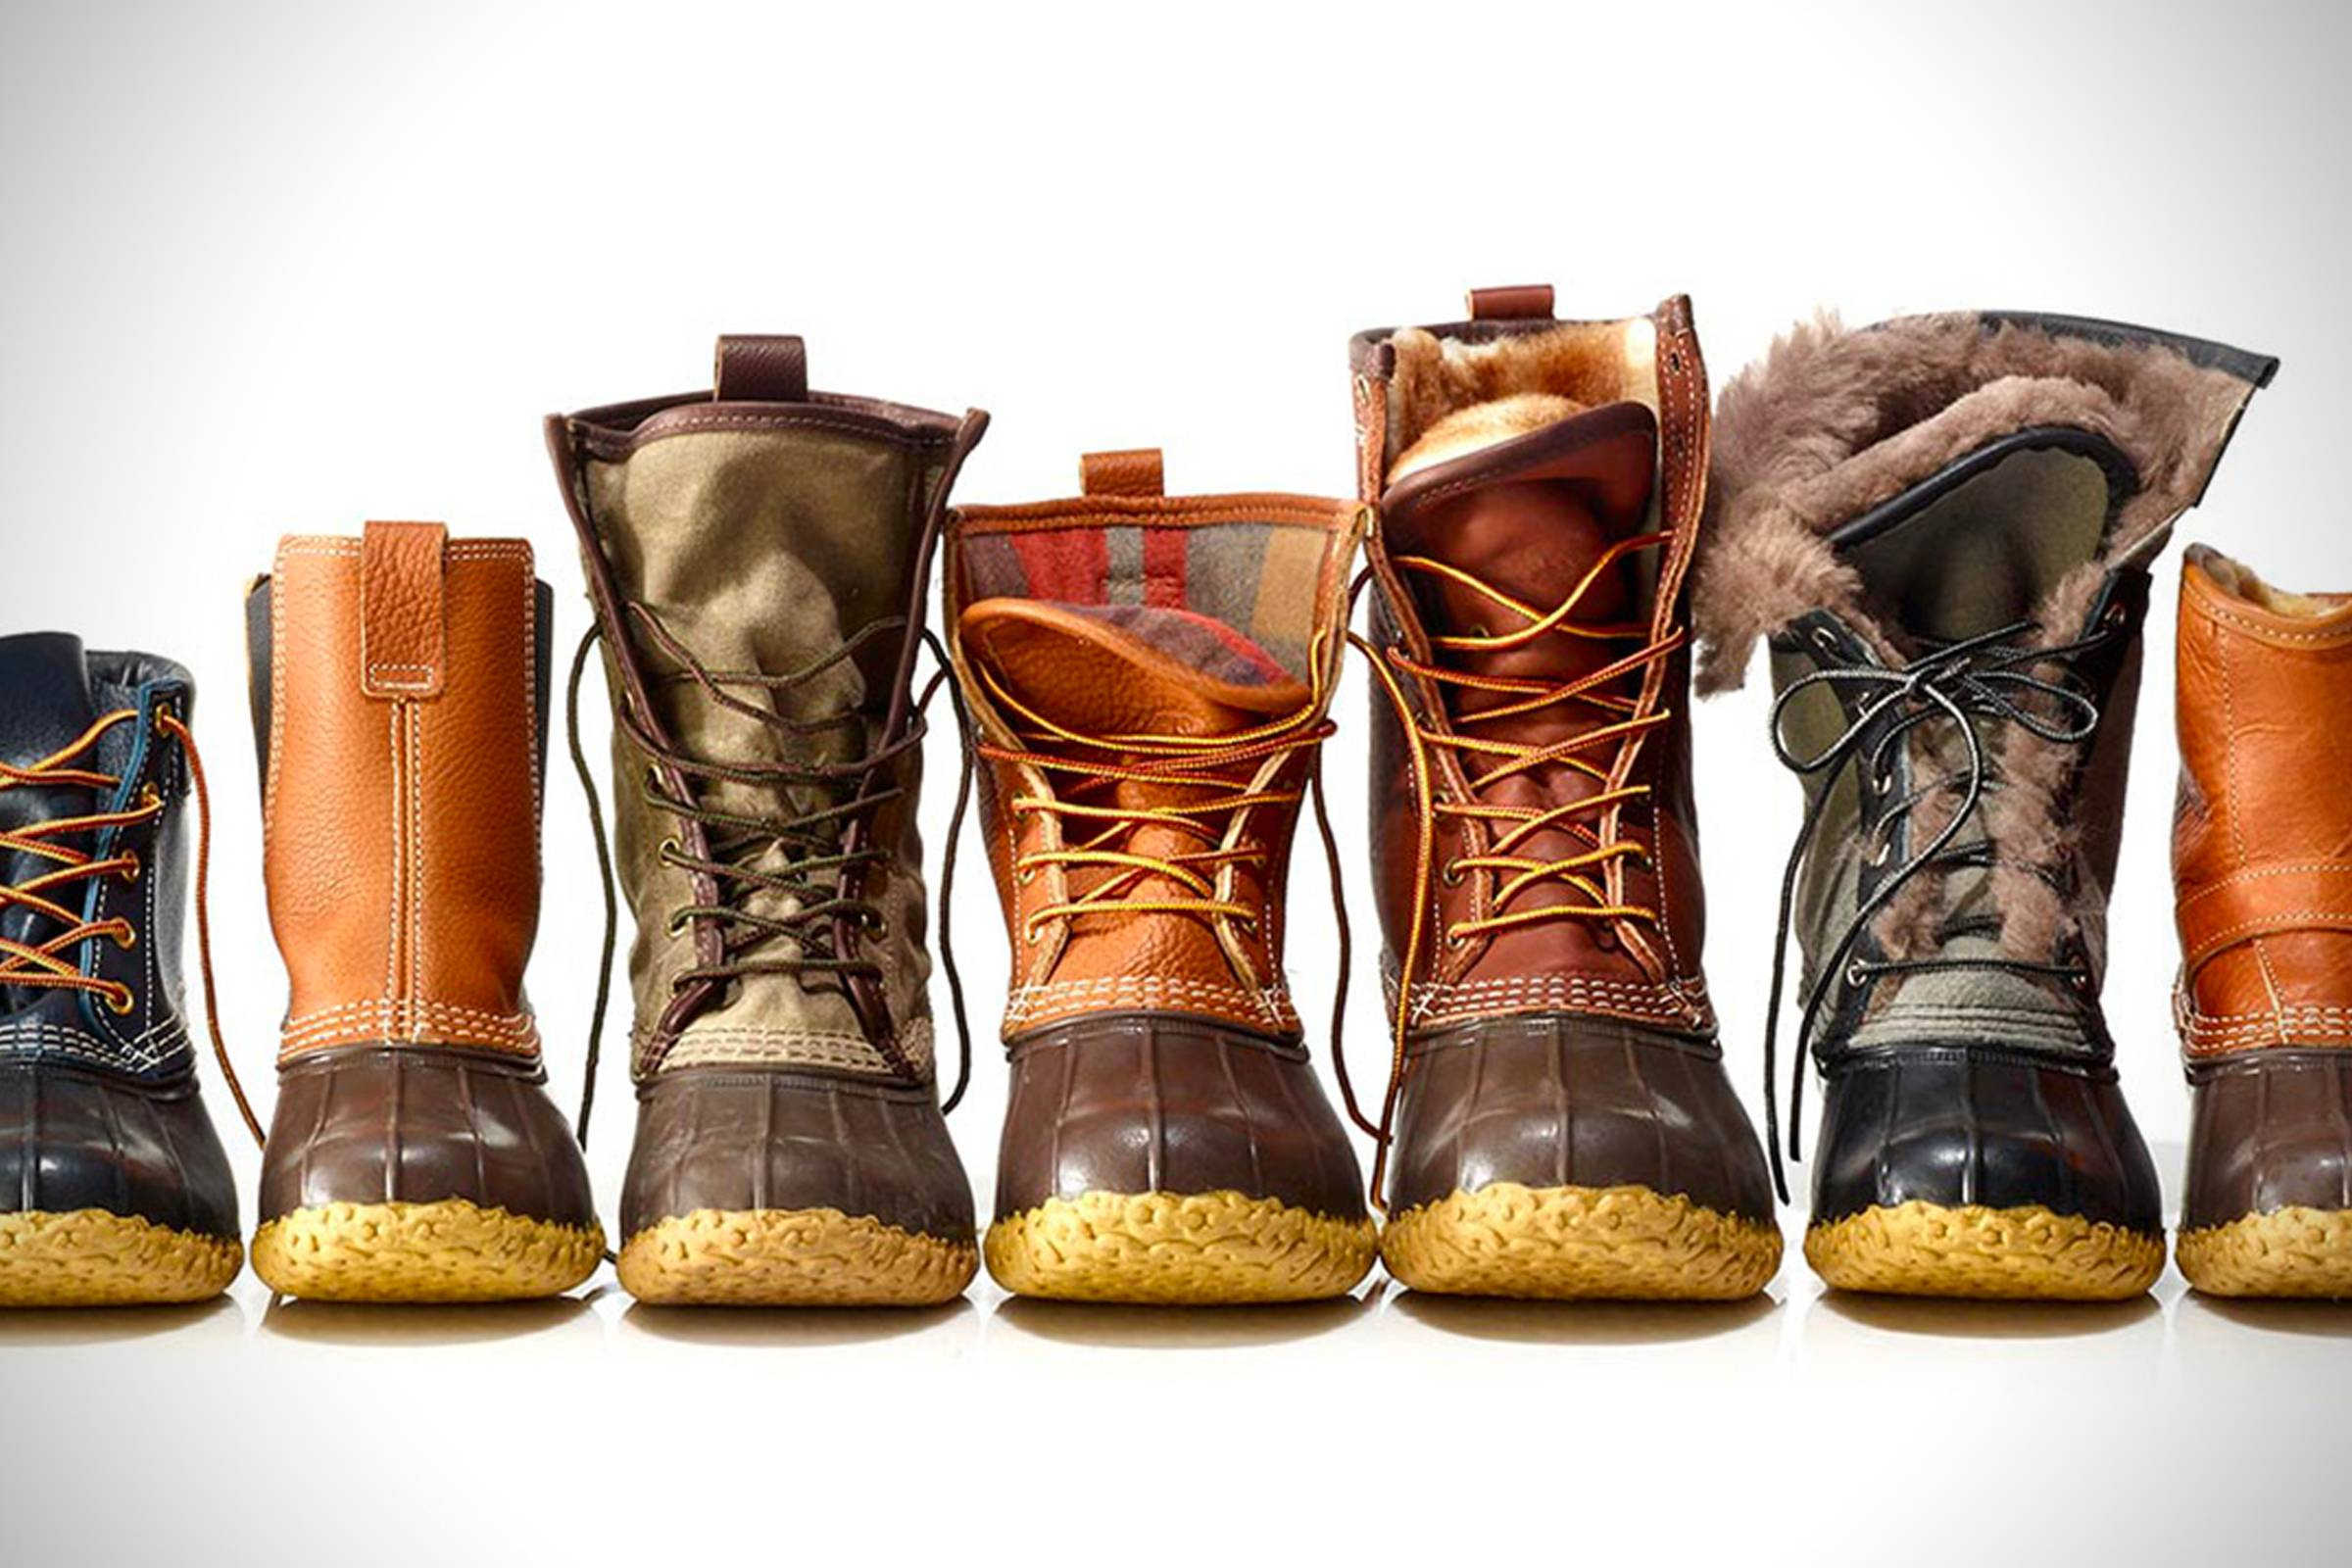 Be An Outsider: A Look at L.L. Bean